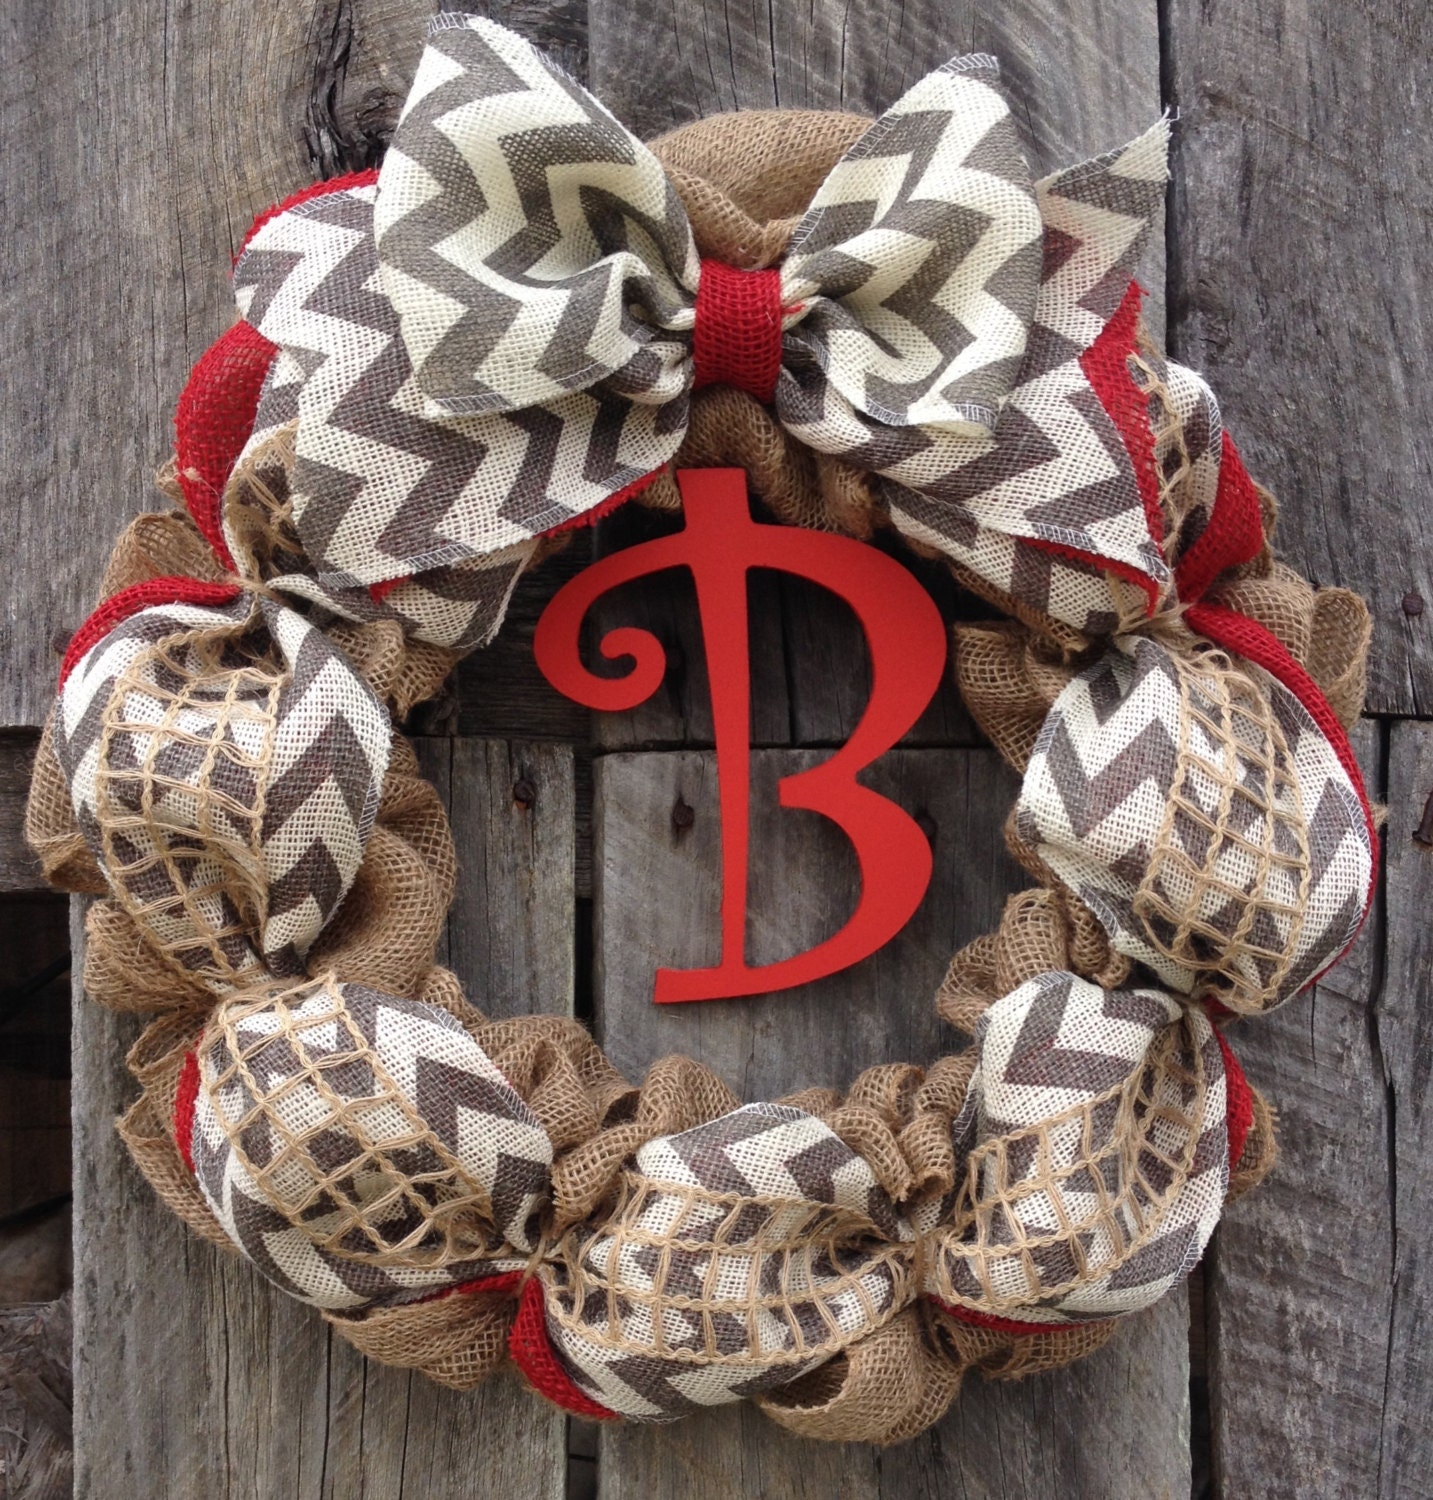 Burlap Initial Wreath Wreath For Door Chevron Wreath Red